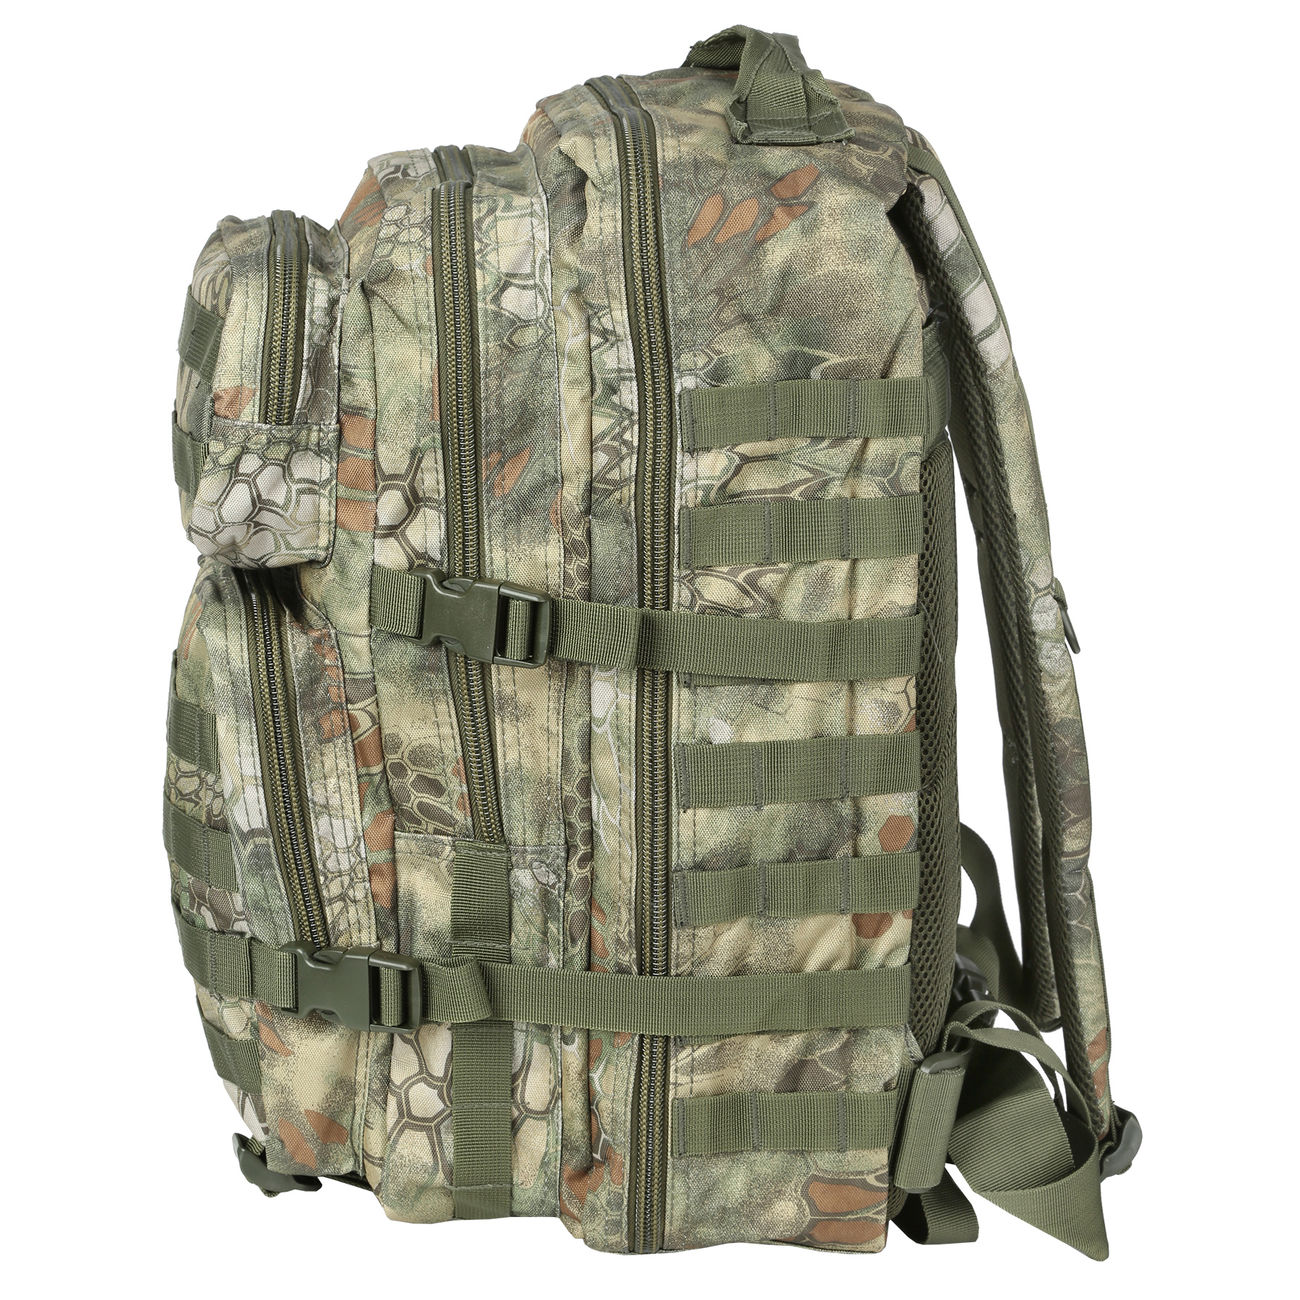 Mil-Tec Rucksack US Assault Pack II 40 Liter mandra wood 2